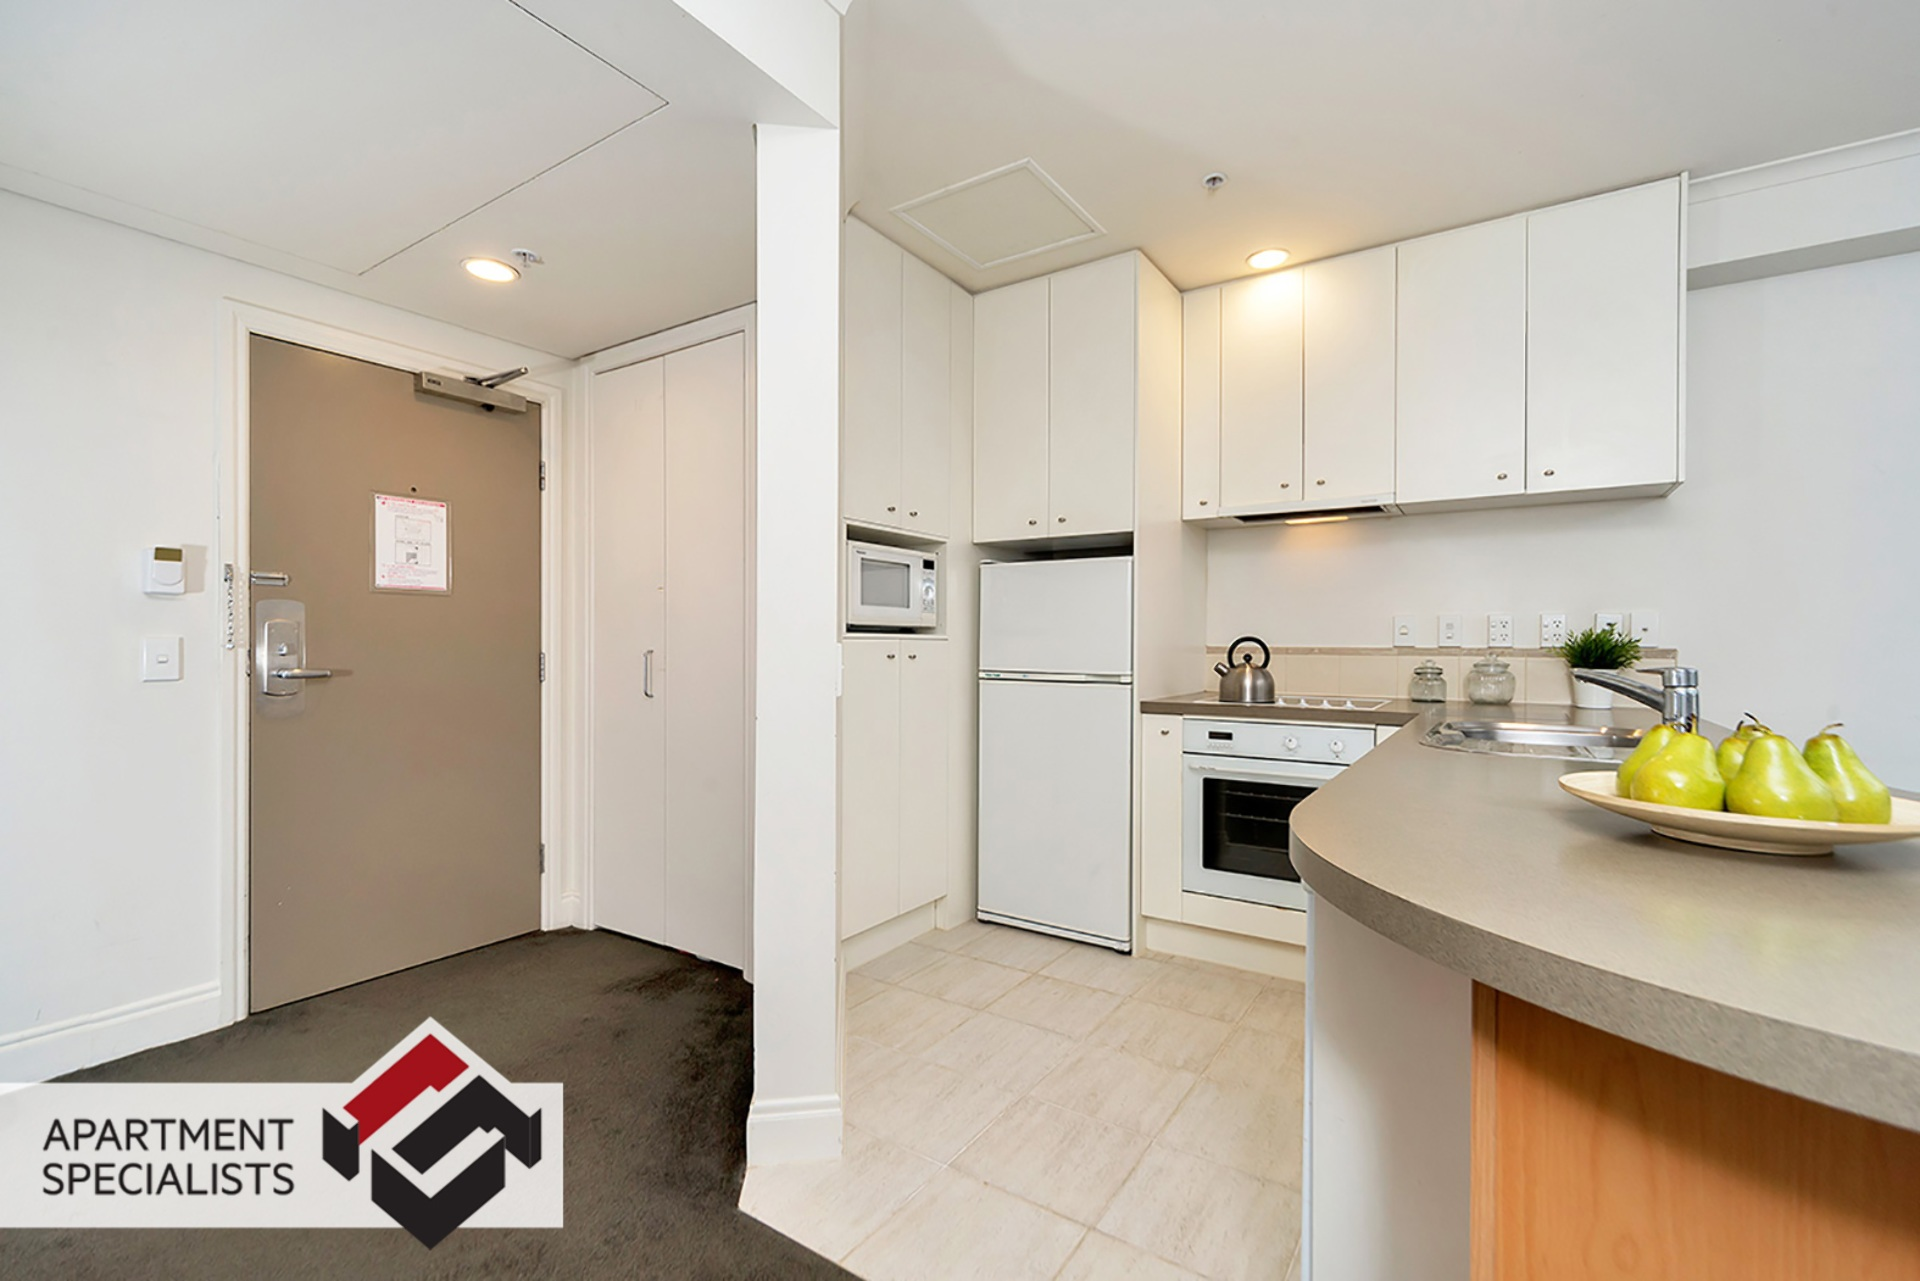 1 | 171 CBD, City Centre | Apartment Specialists